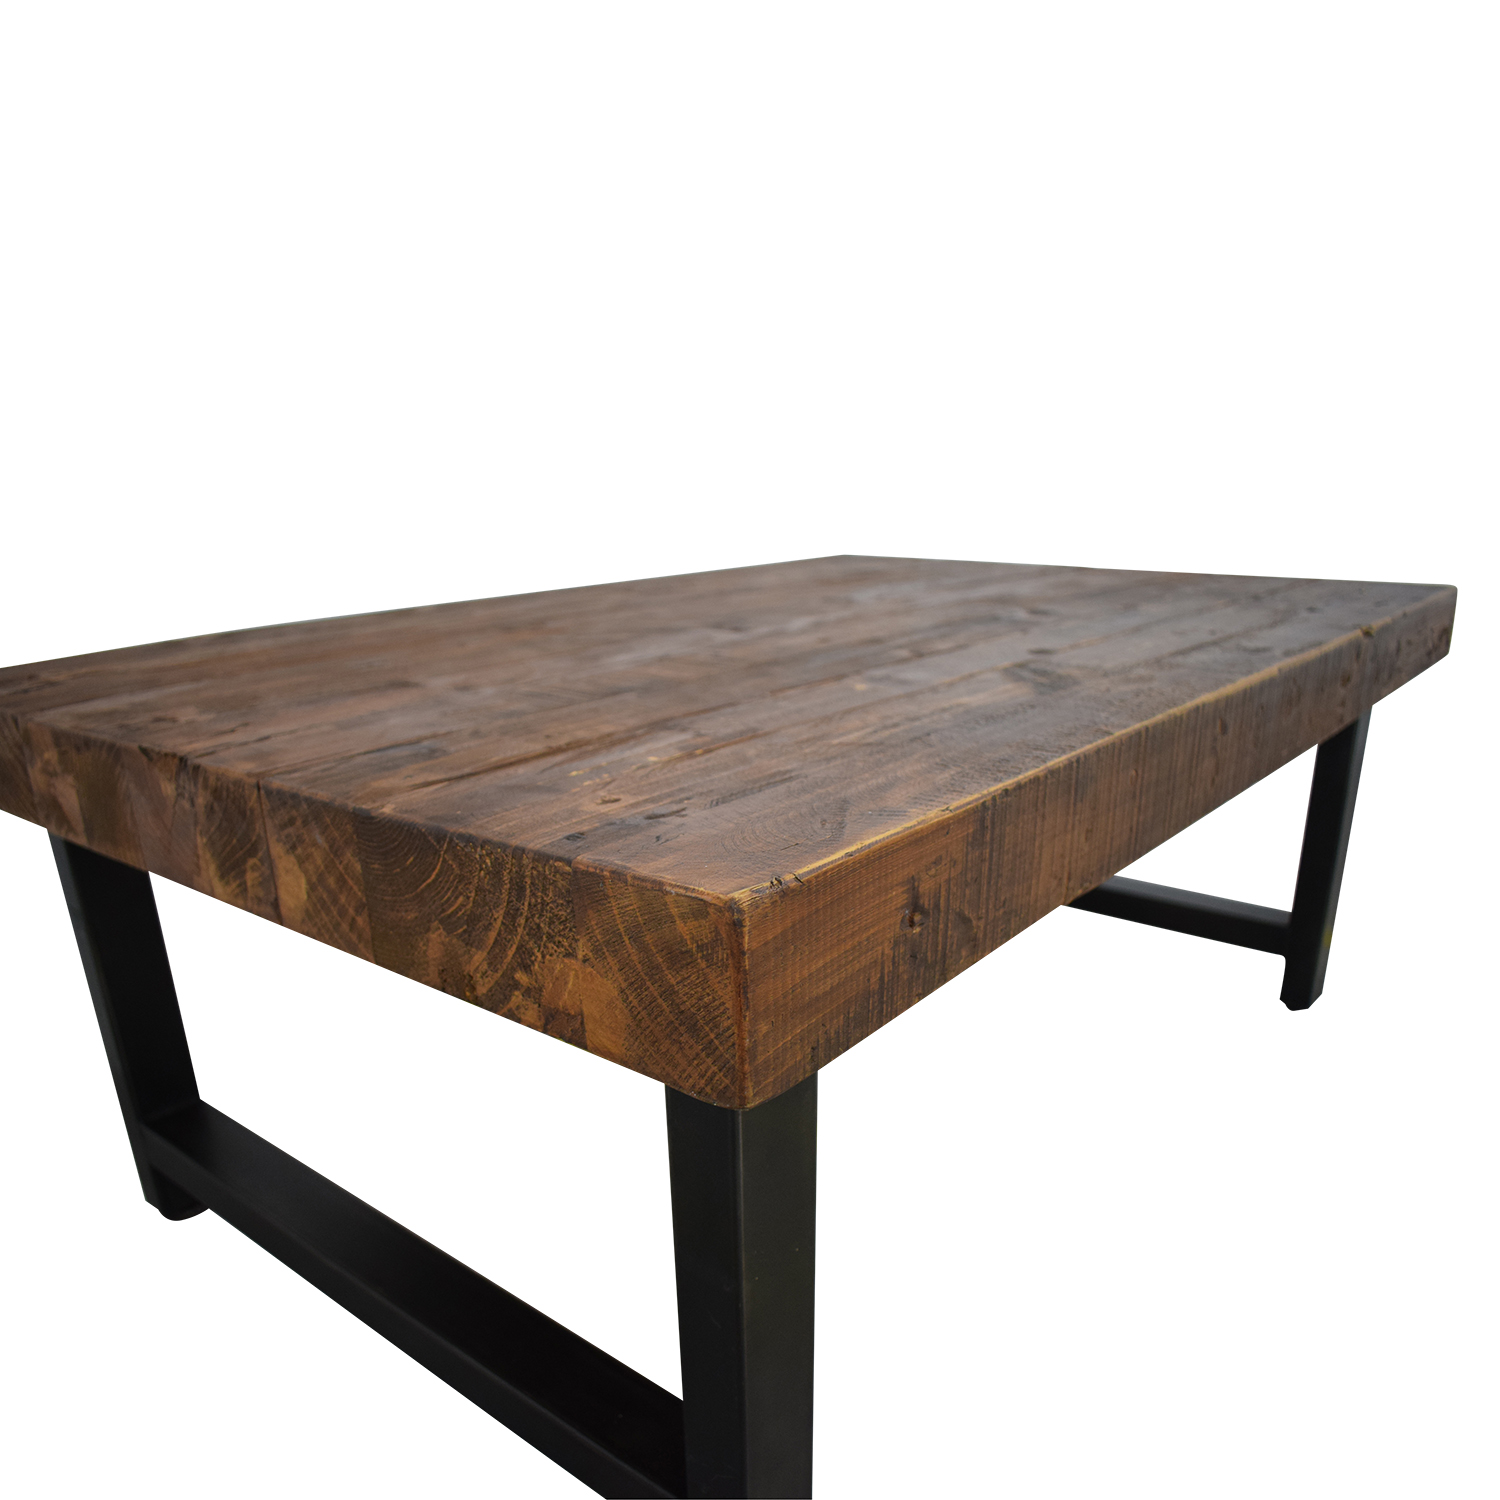 Pottery Barn Griffin Reclaimed Wood Coffee Table Pottery Barn